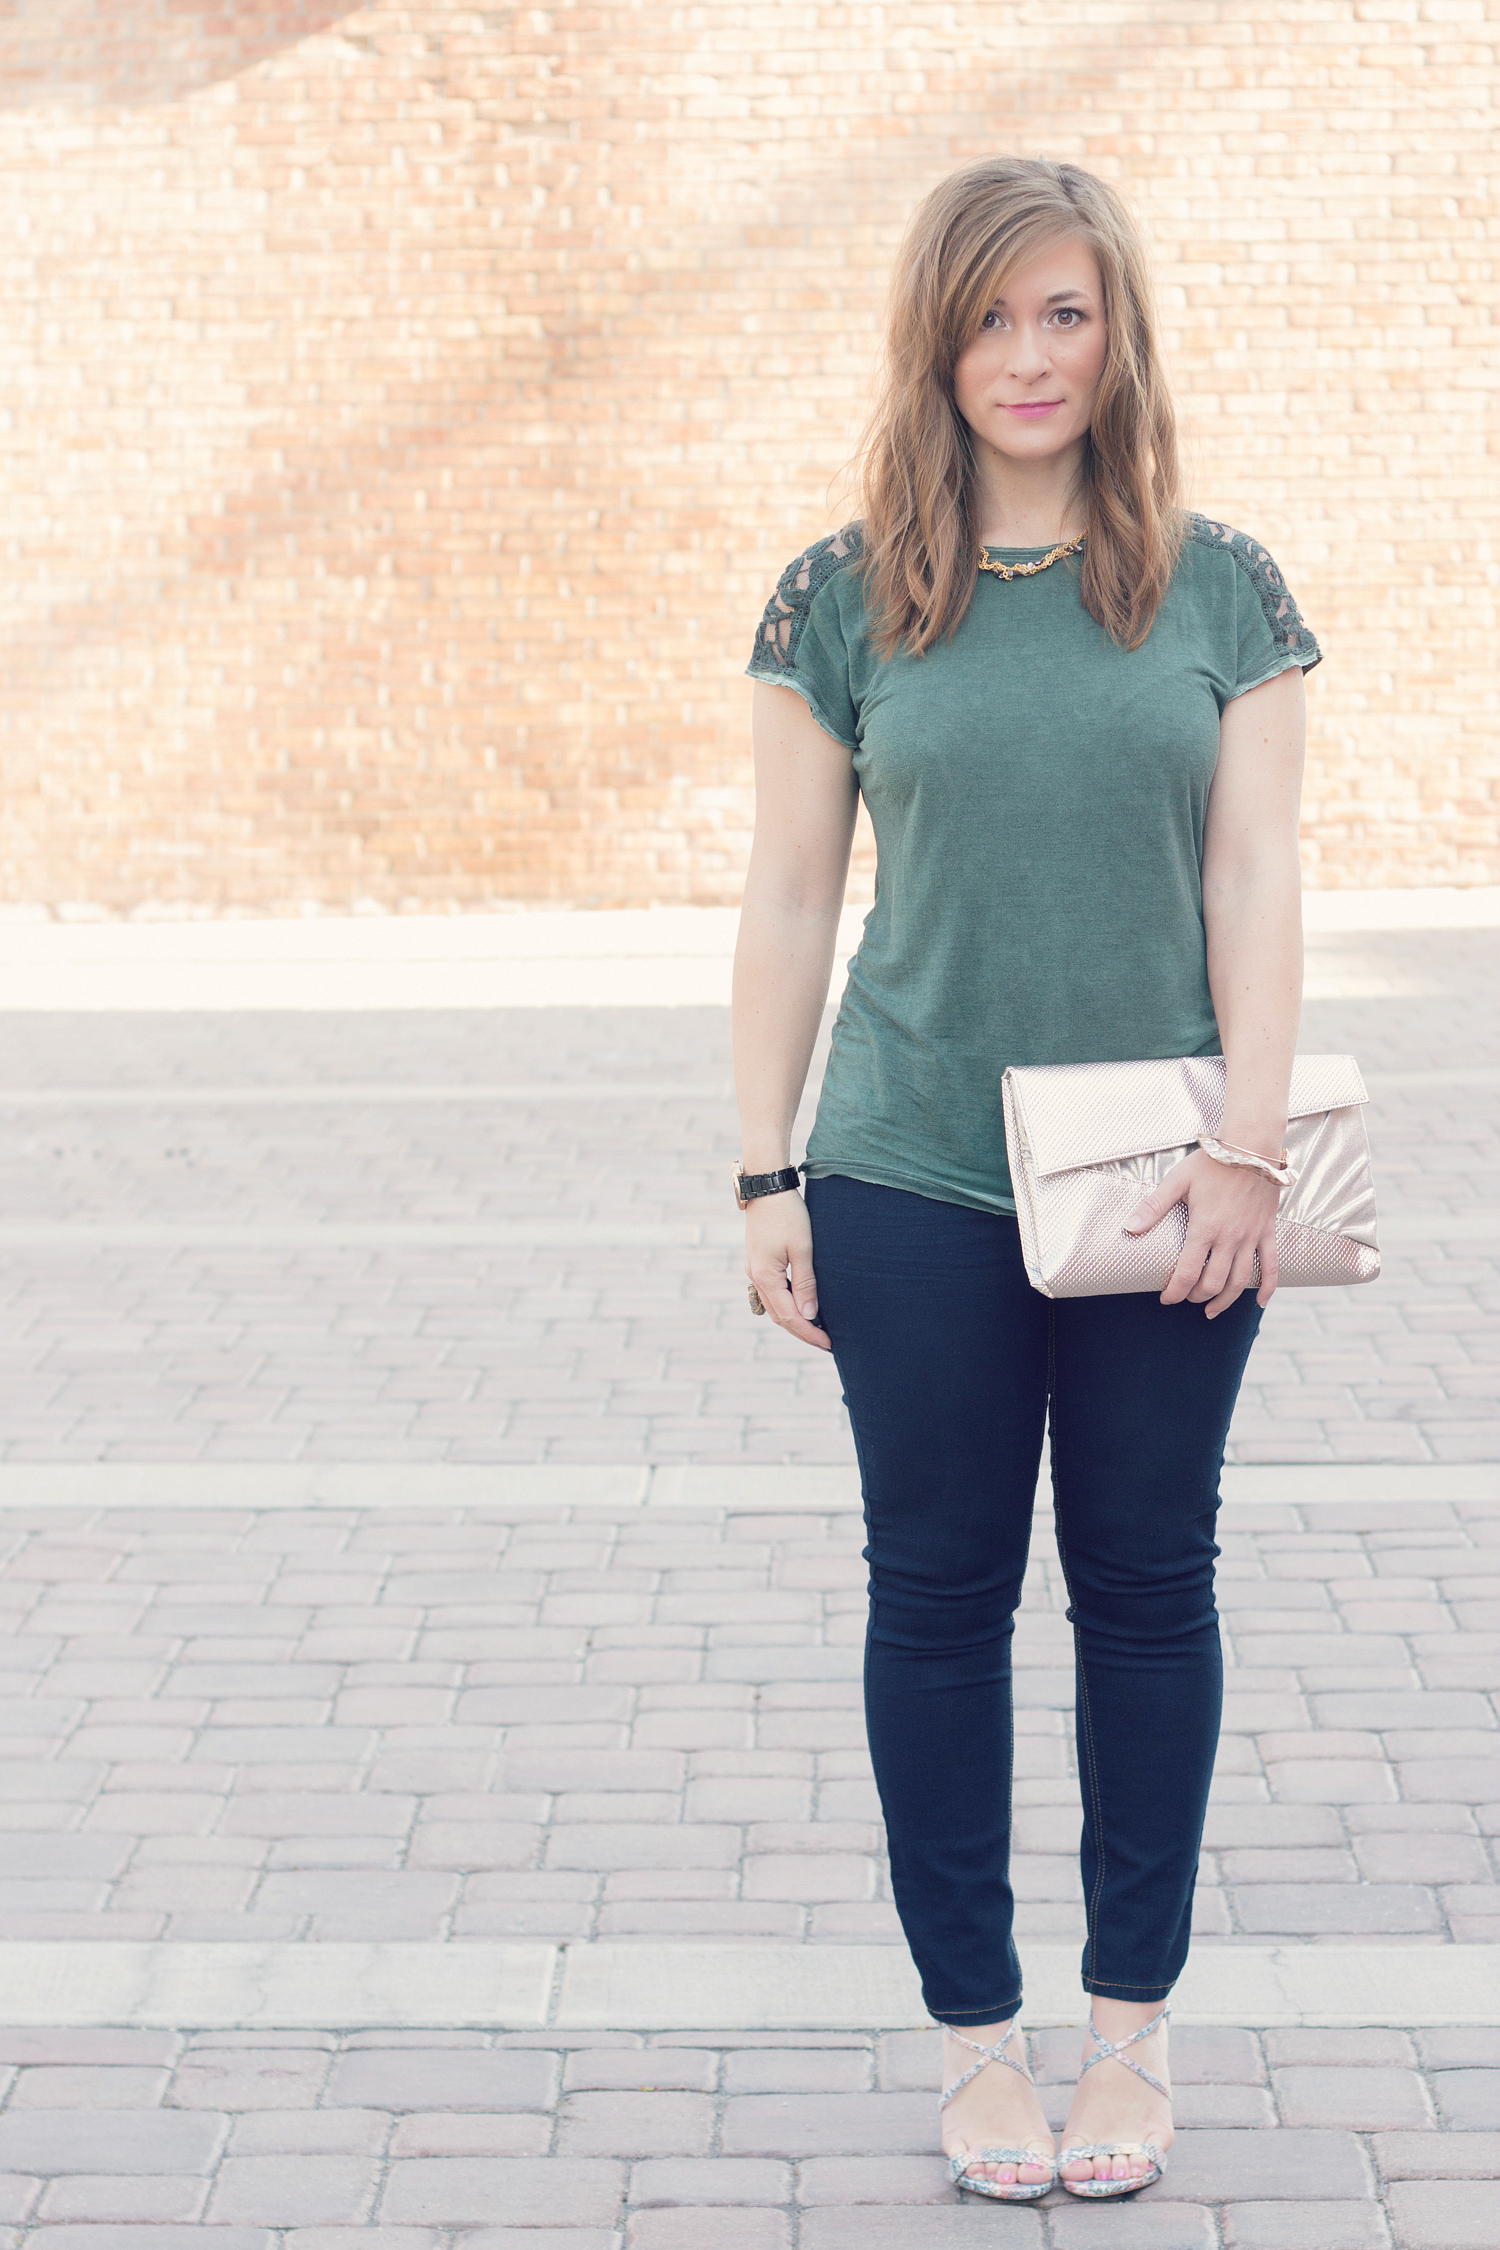 How to Dress up a Women's Tee